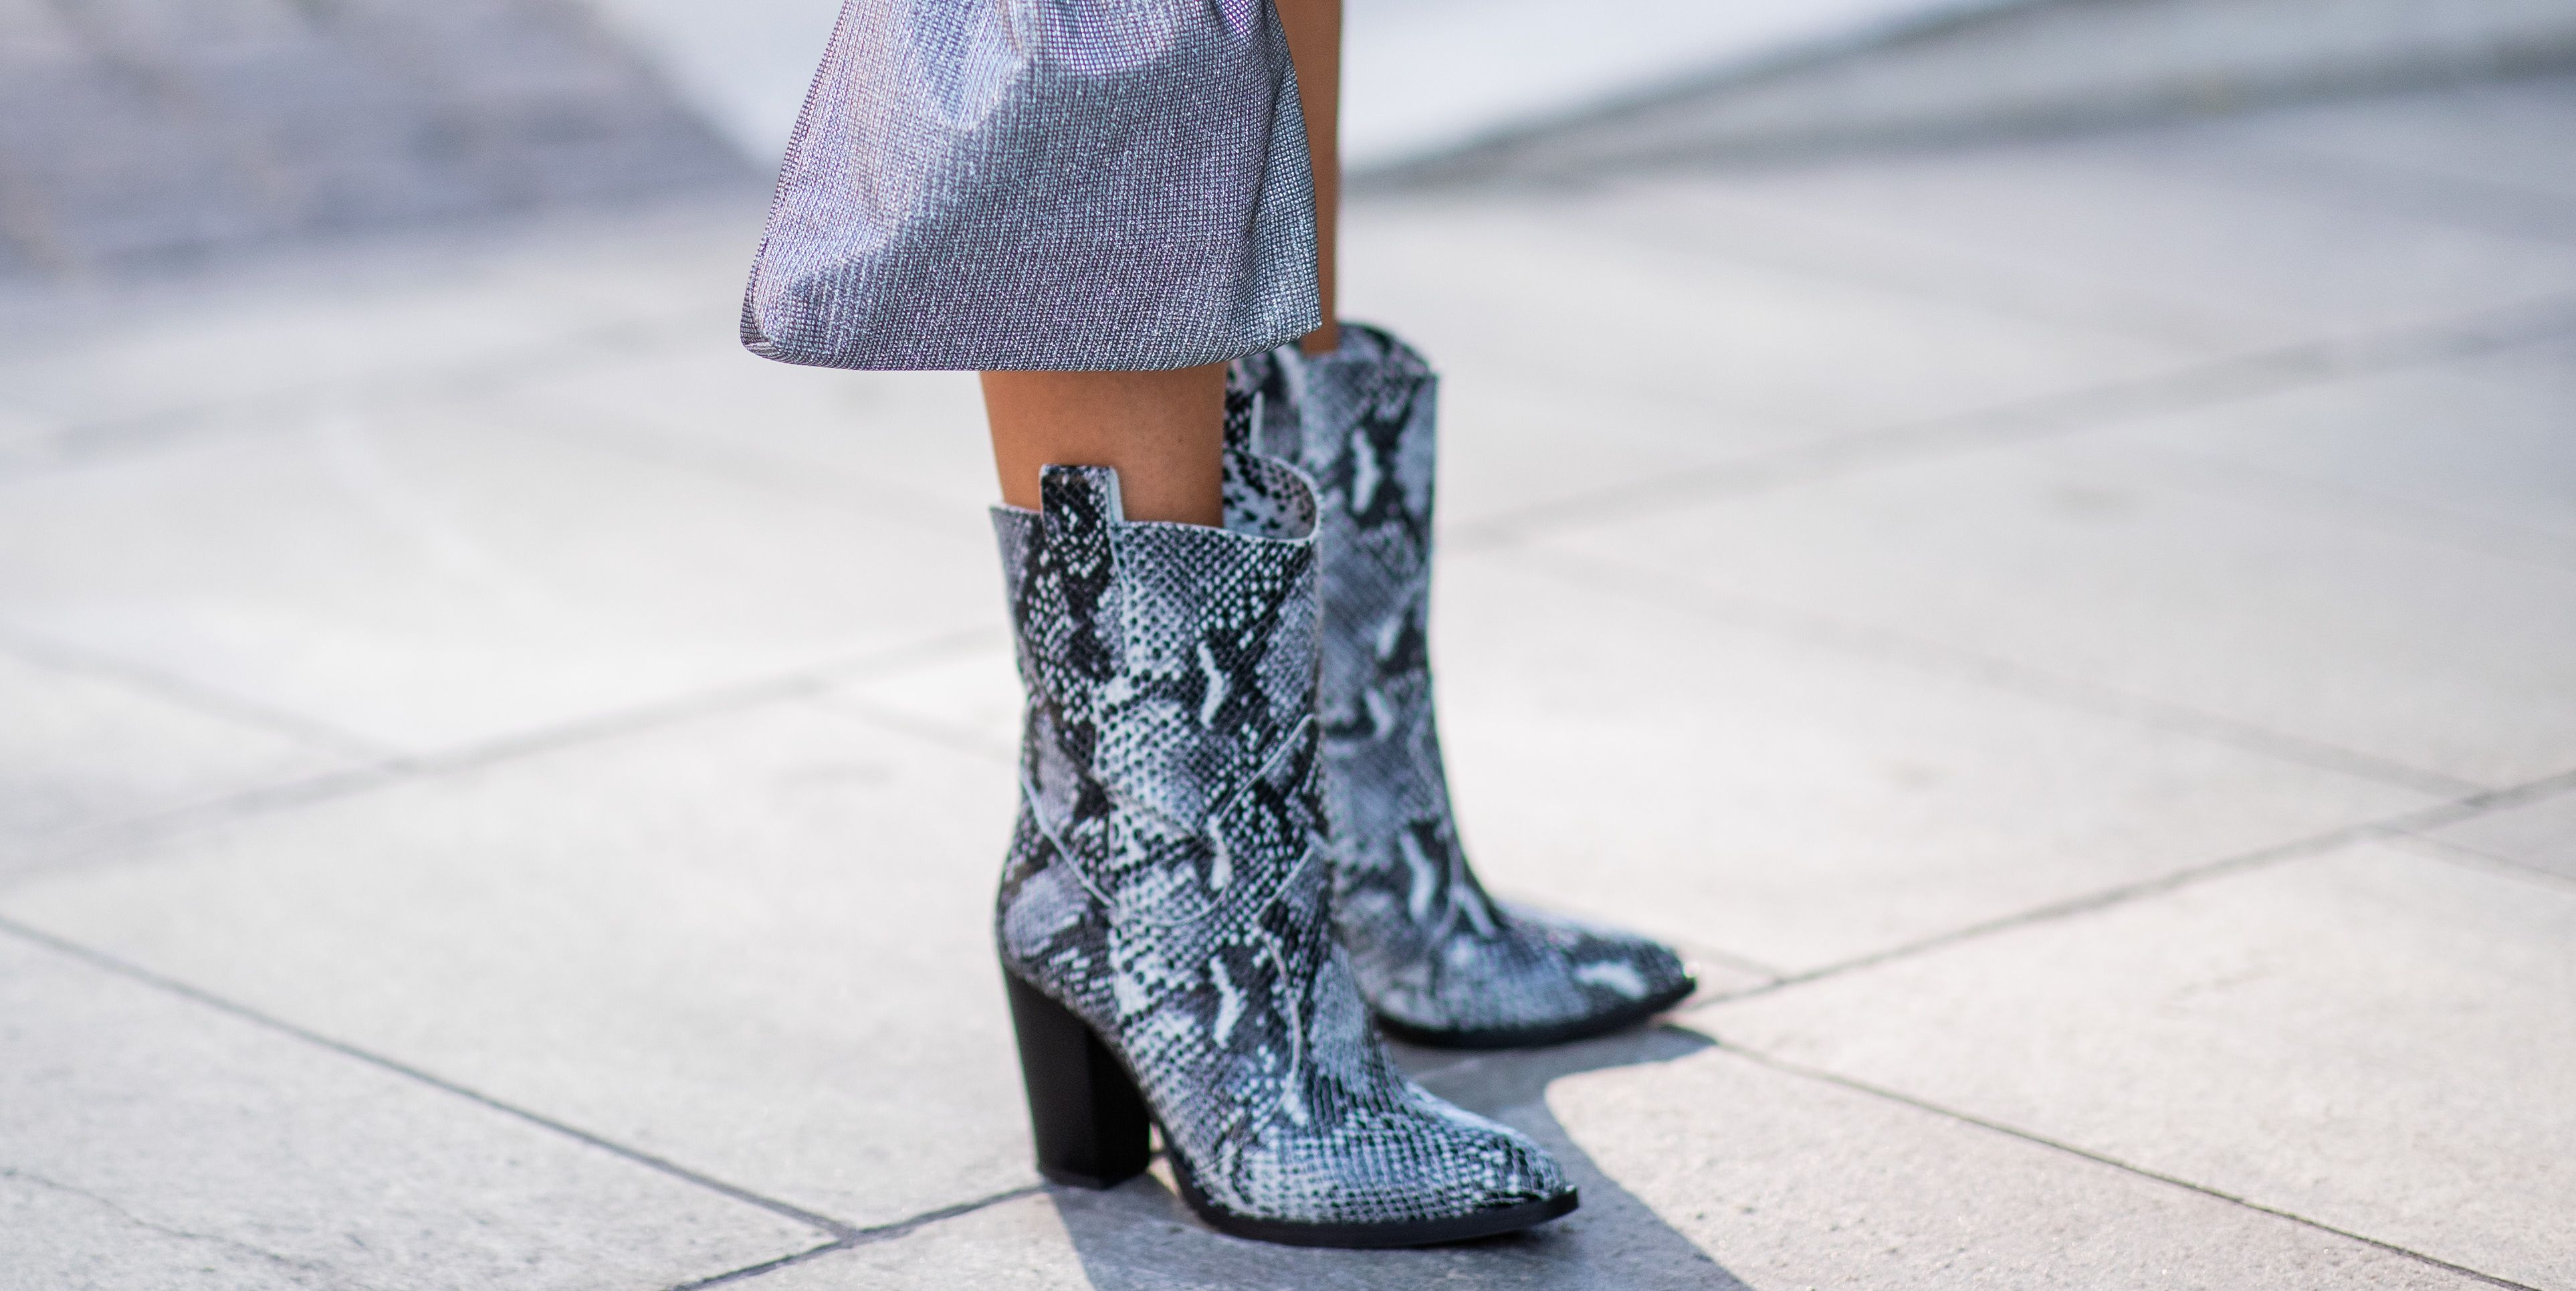 The 10 Best Snakeskin Boots to Buy Right Now